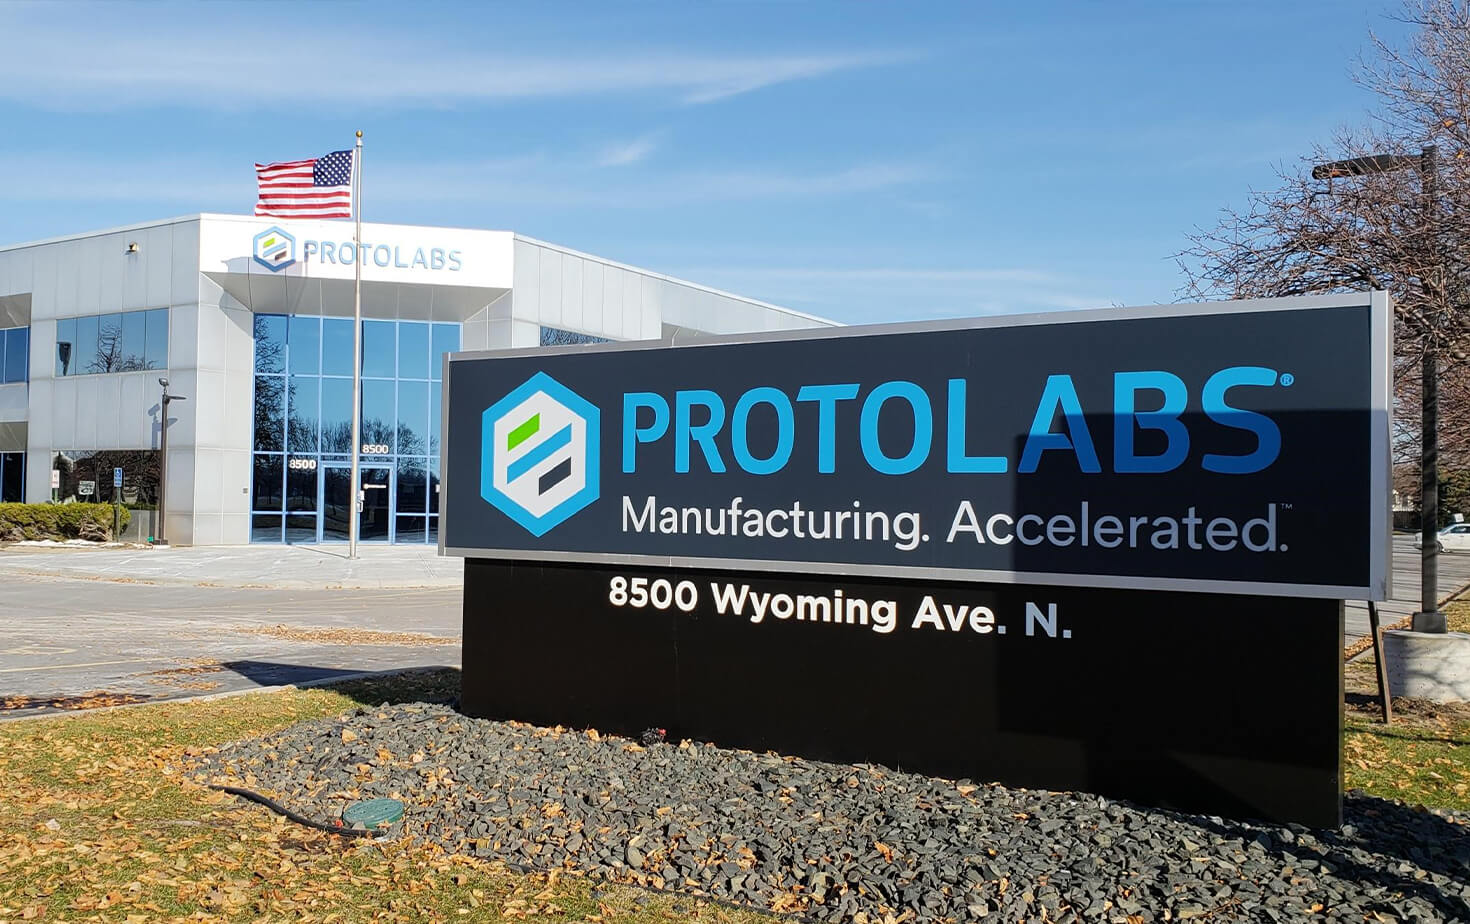 Protolabs Exterior Monument Sign in front of Building with Channel Letters Brooklyn Park MN